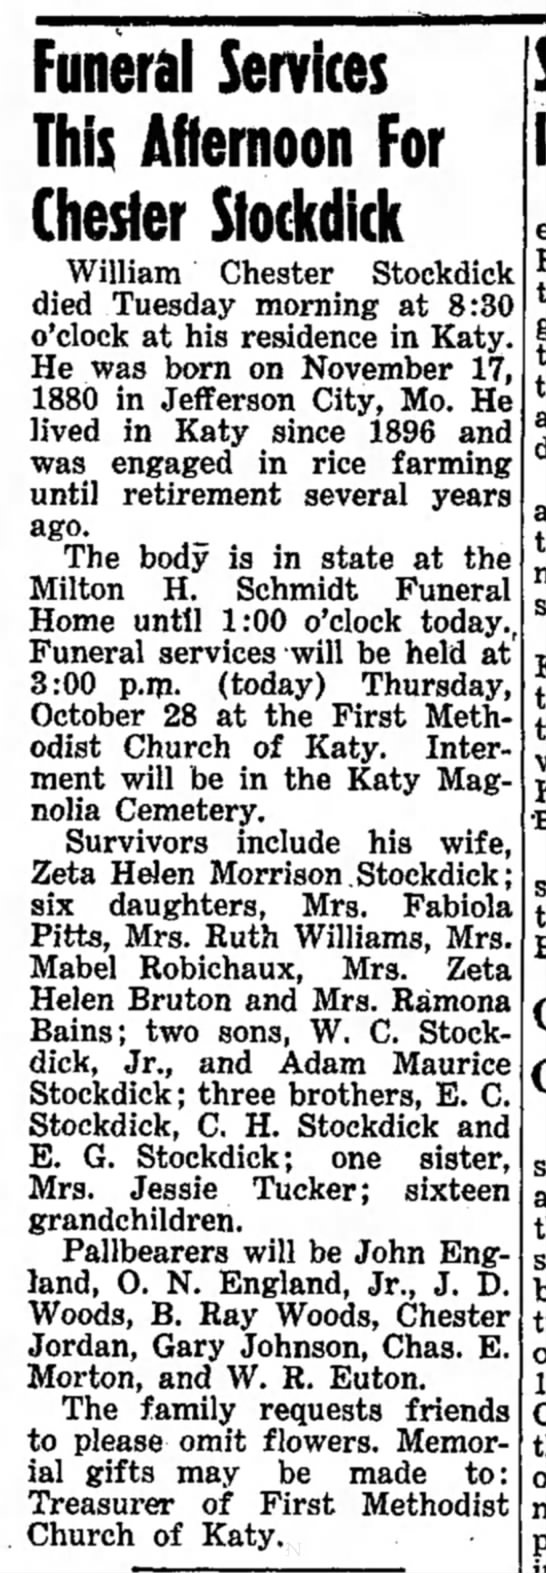 Obit for Chester Stockdick, 28 Oct 1954, The Brookshire Times.